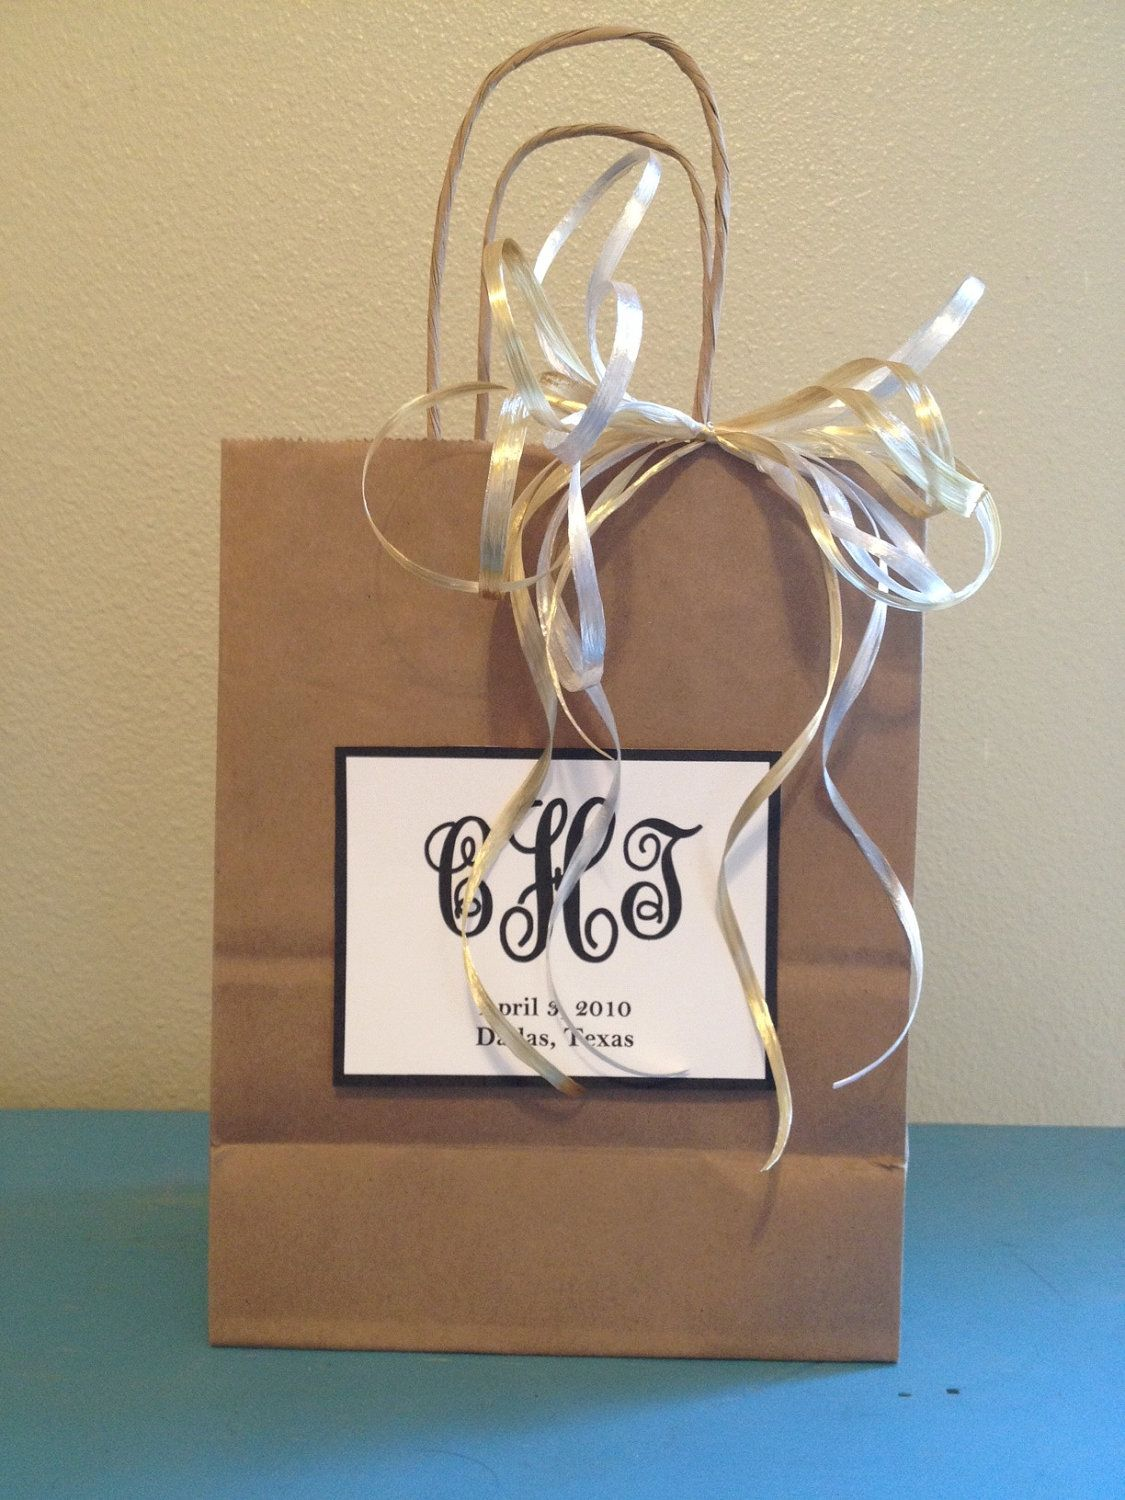 Wedding Welcome Bags With Monogram 2 00 Via Etsy Wedding Gifts For Guests Wedding Guest Gift Bag Wedding Gift Bags